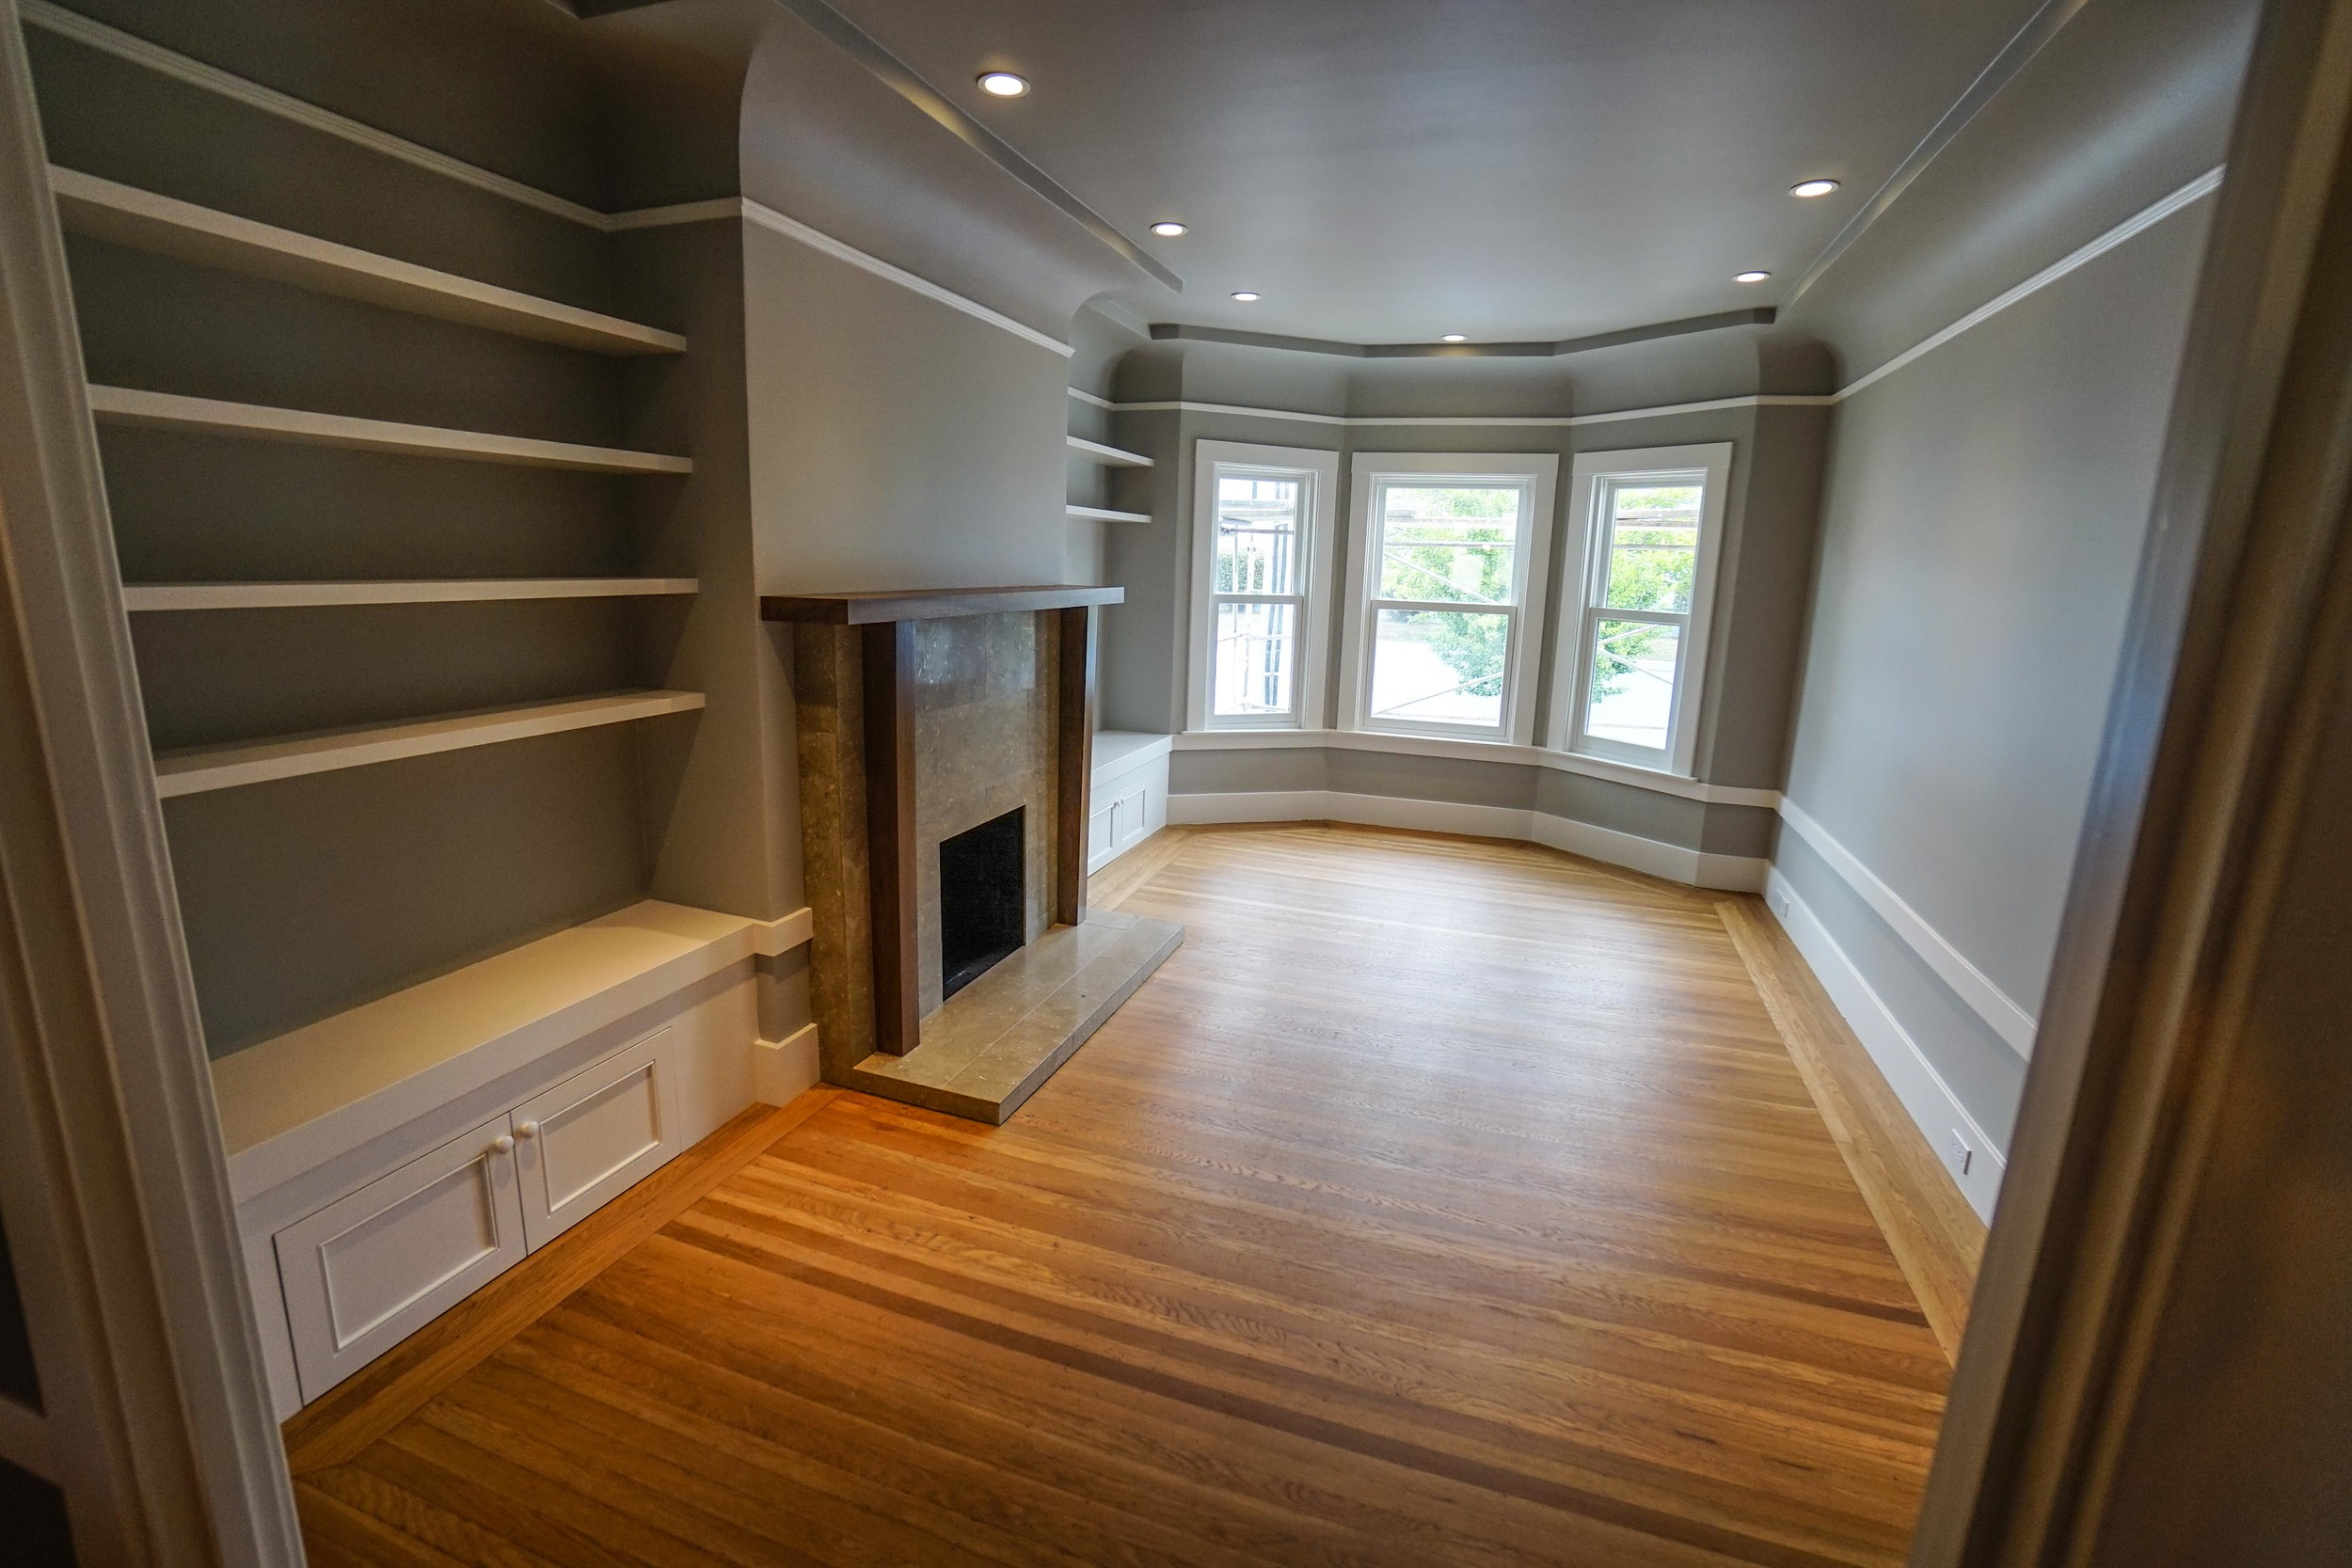 built in shelving and fireplace